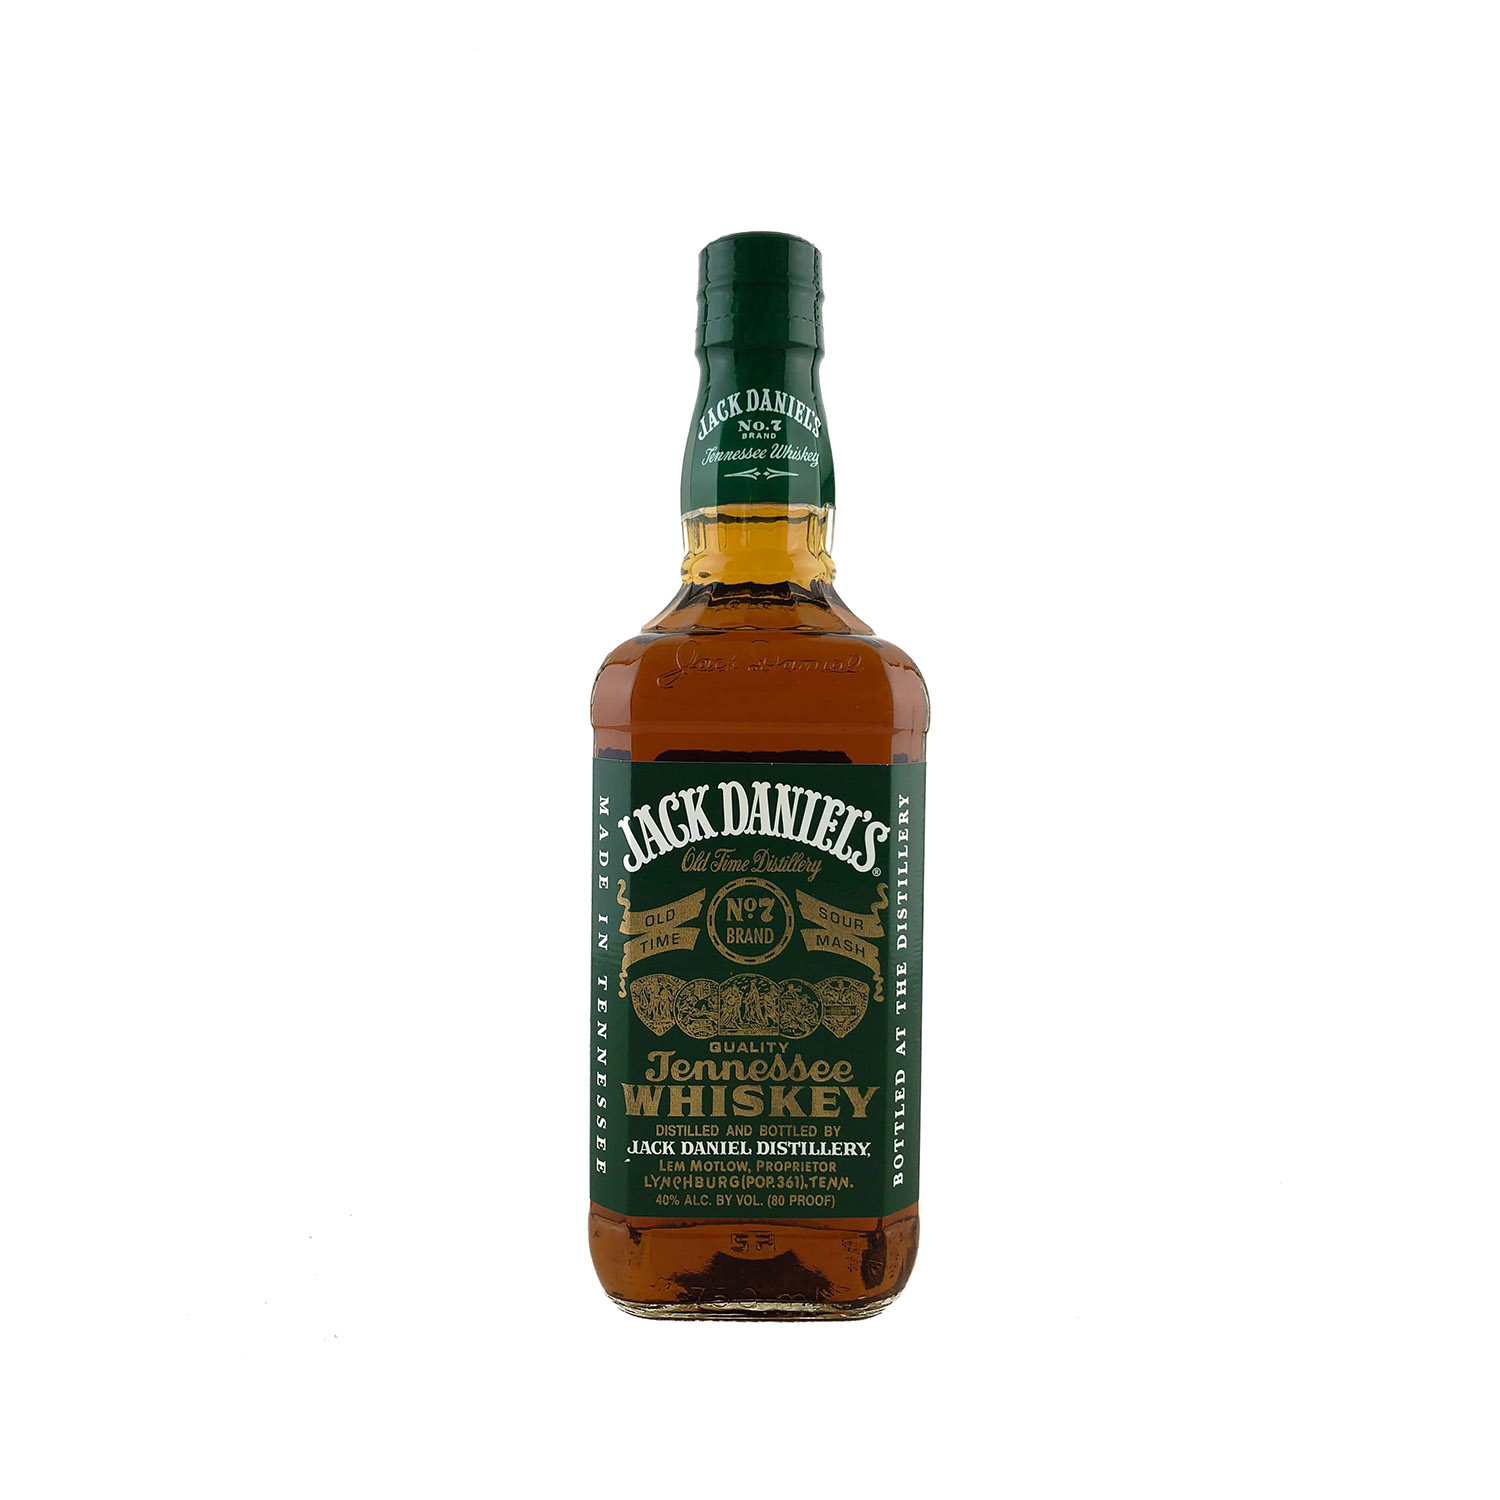 Jack Daniels Green Label 'Heritage' Tennessee Whiskey